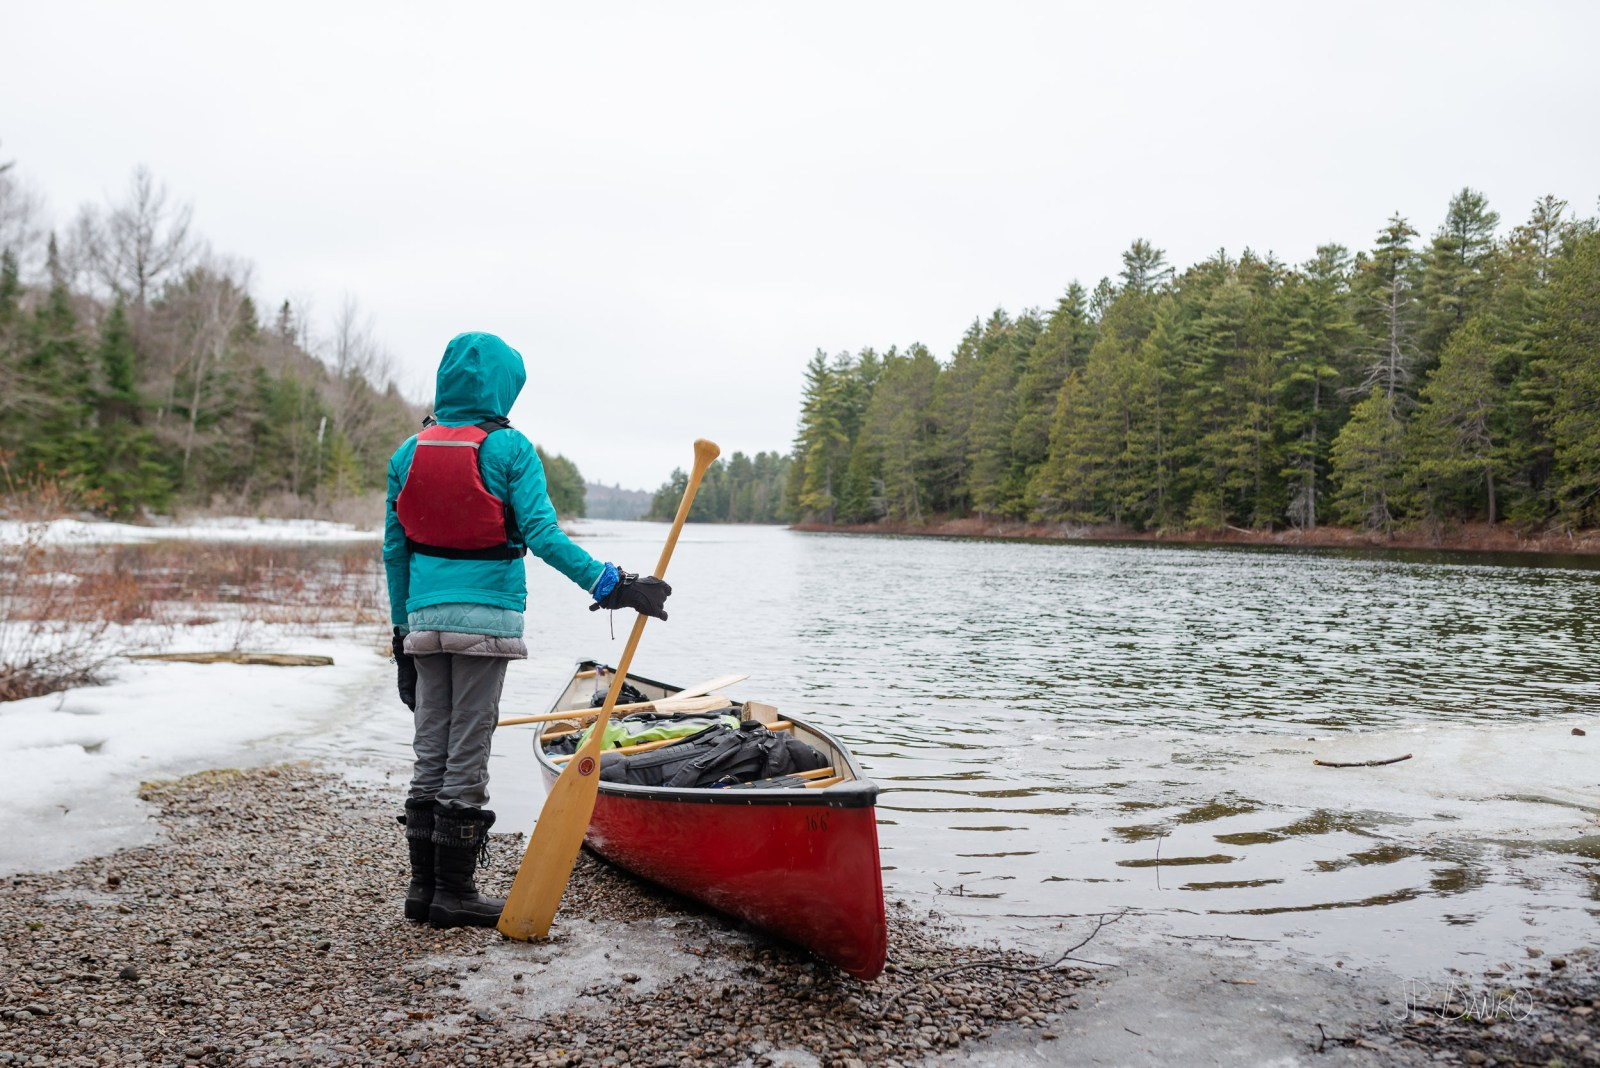 Girl Paddle Spring Red Canoe Trip Backcountry Wilderness Snow